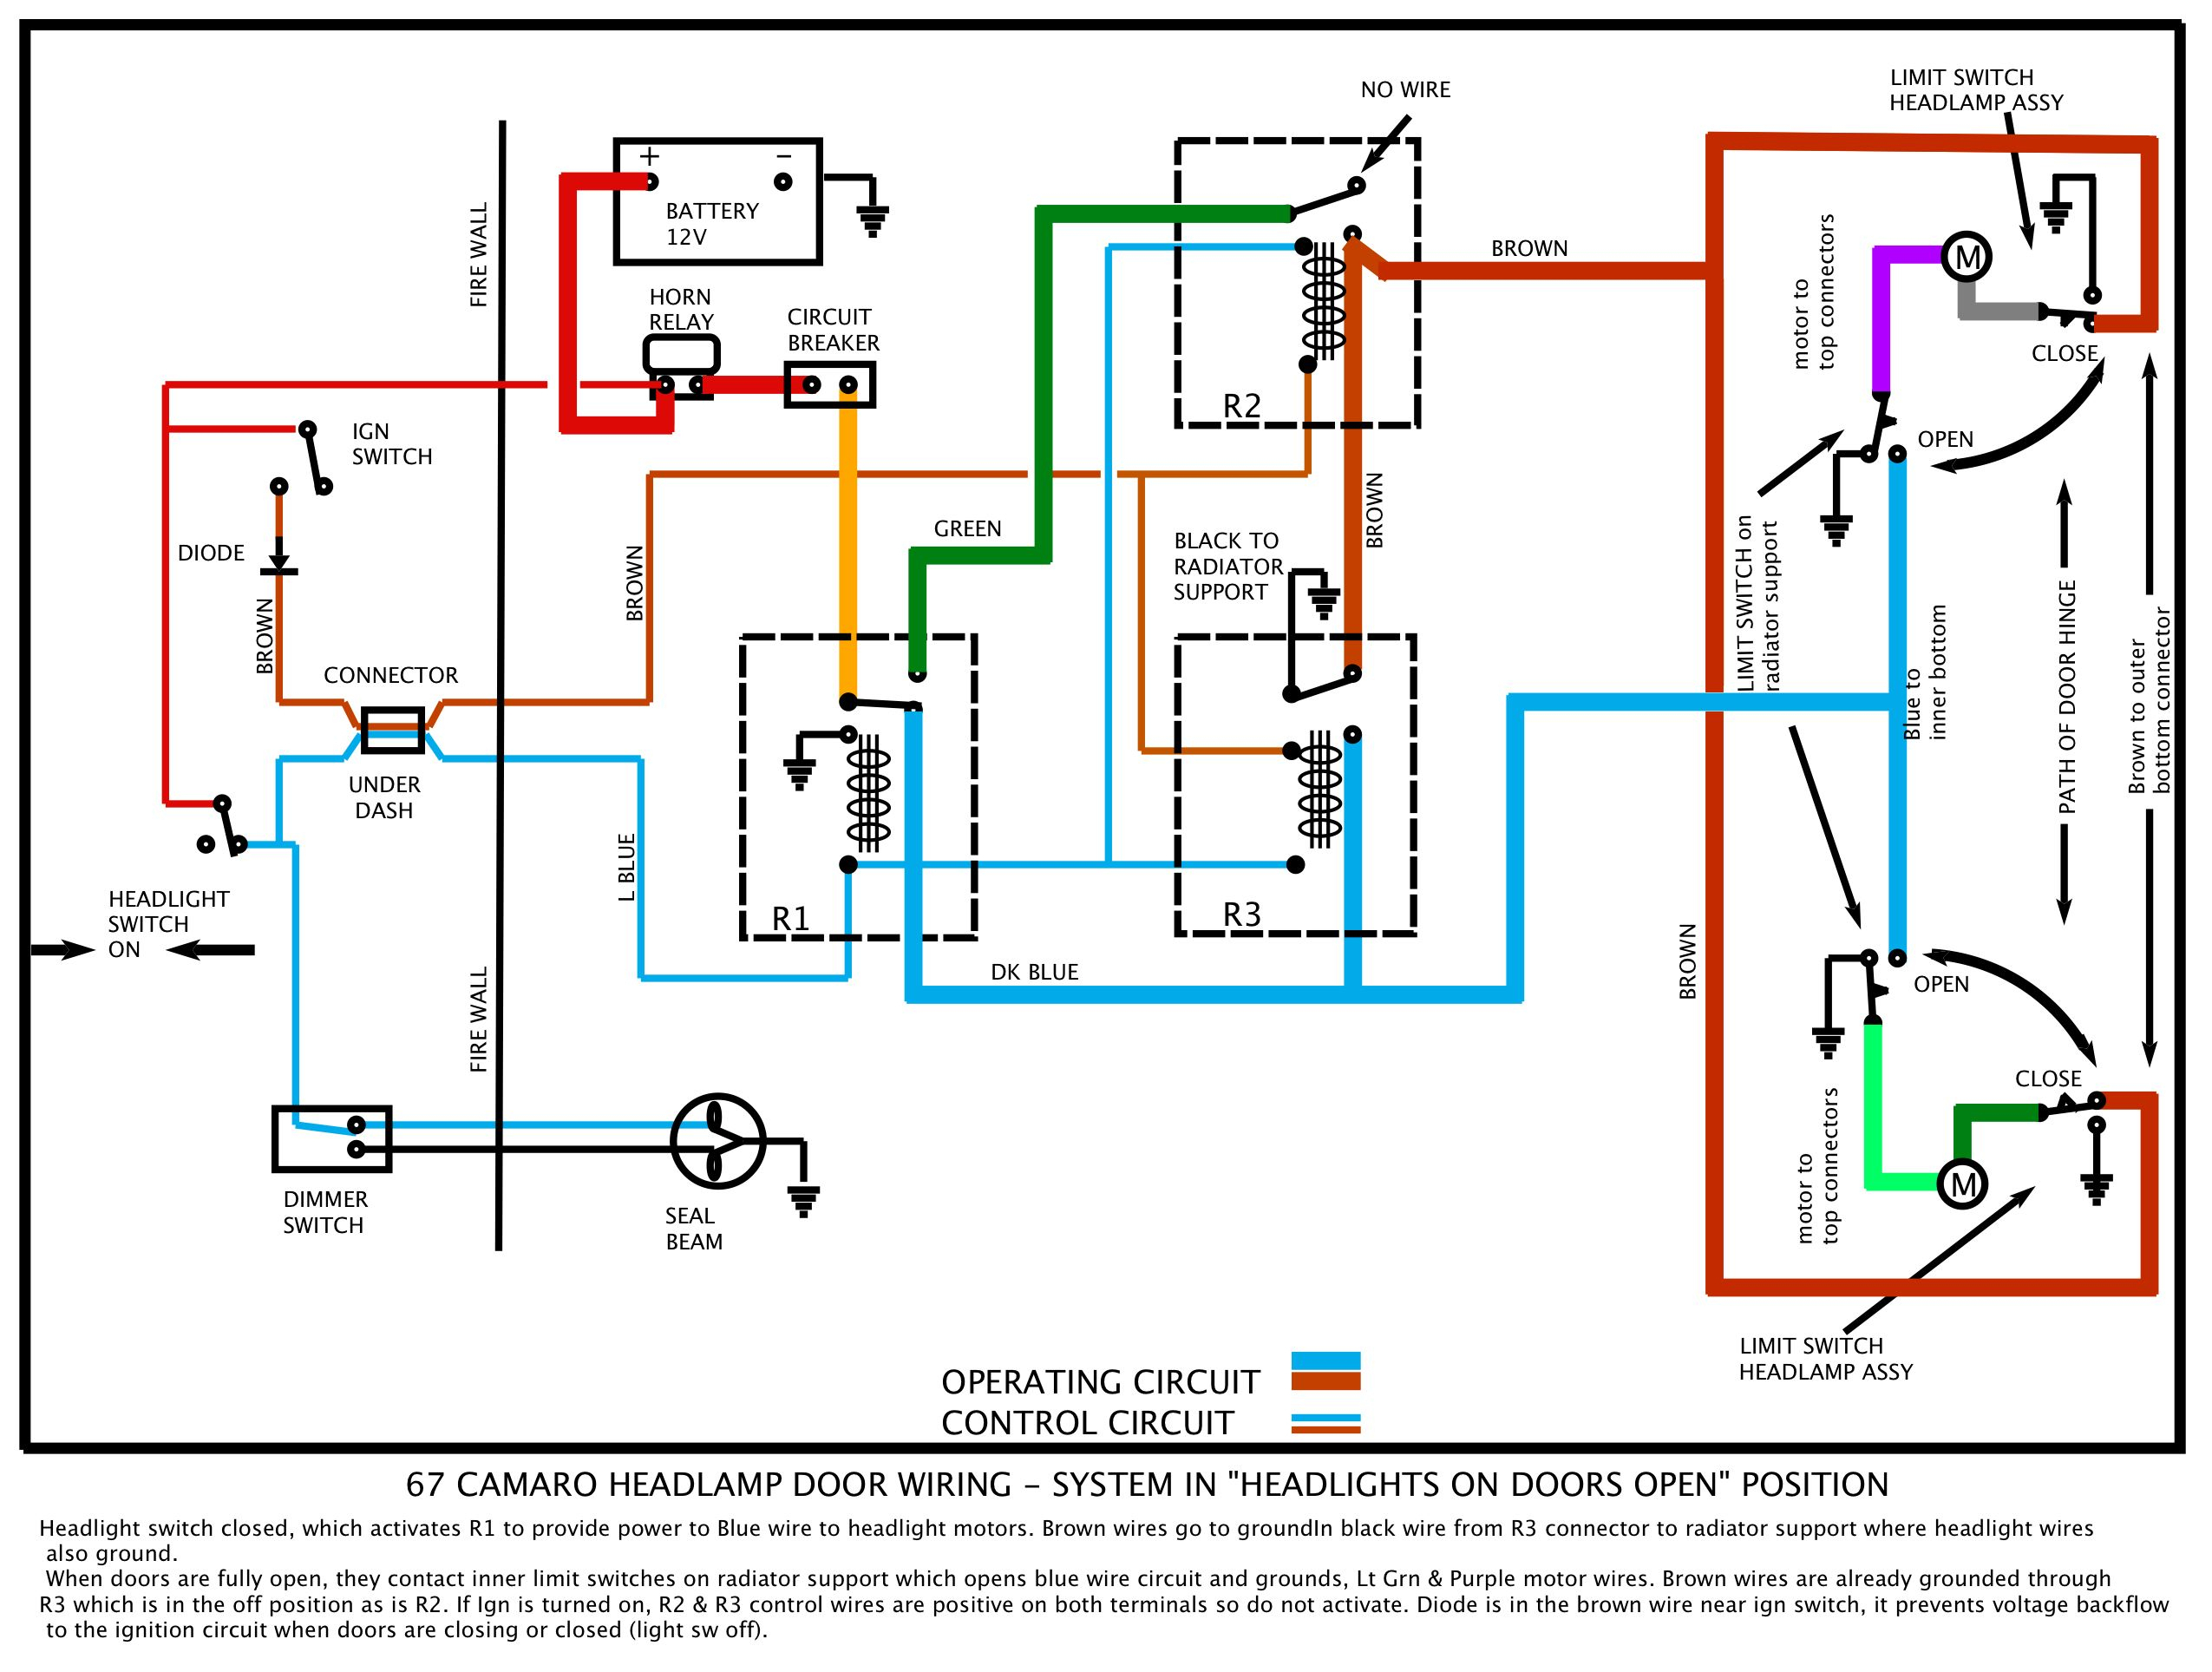 Headlight Wiring Diagram - Wiring Diagram Explained - Headlight Switch Wiring Diagram